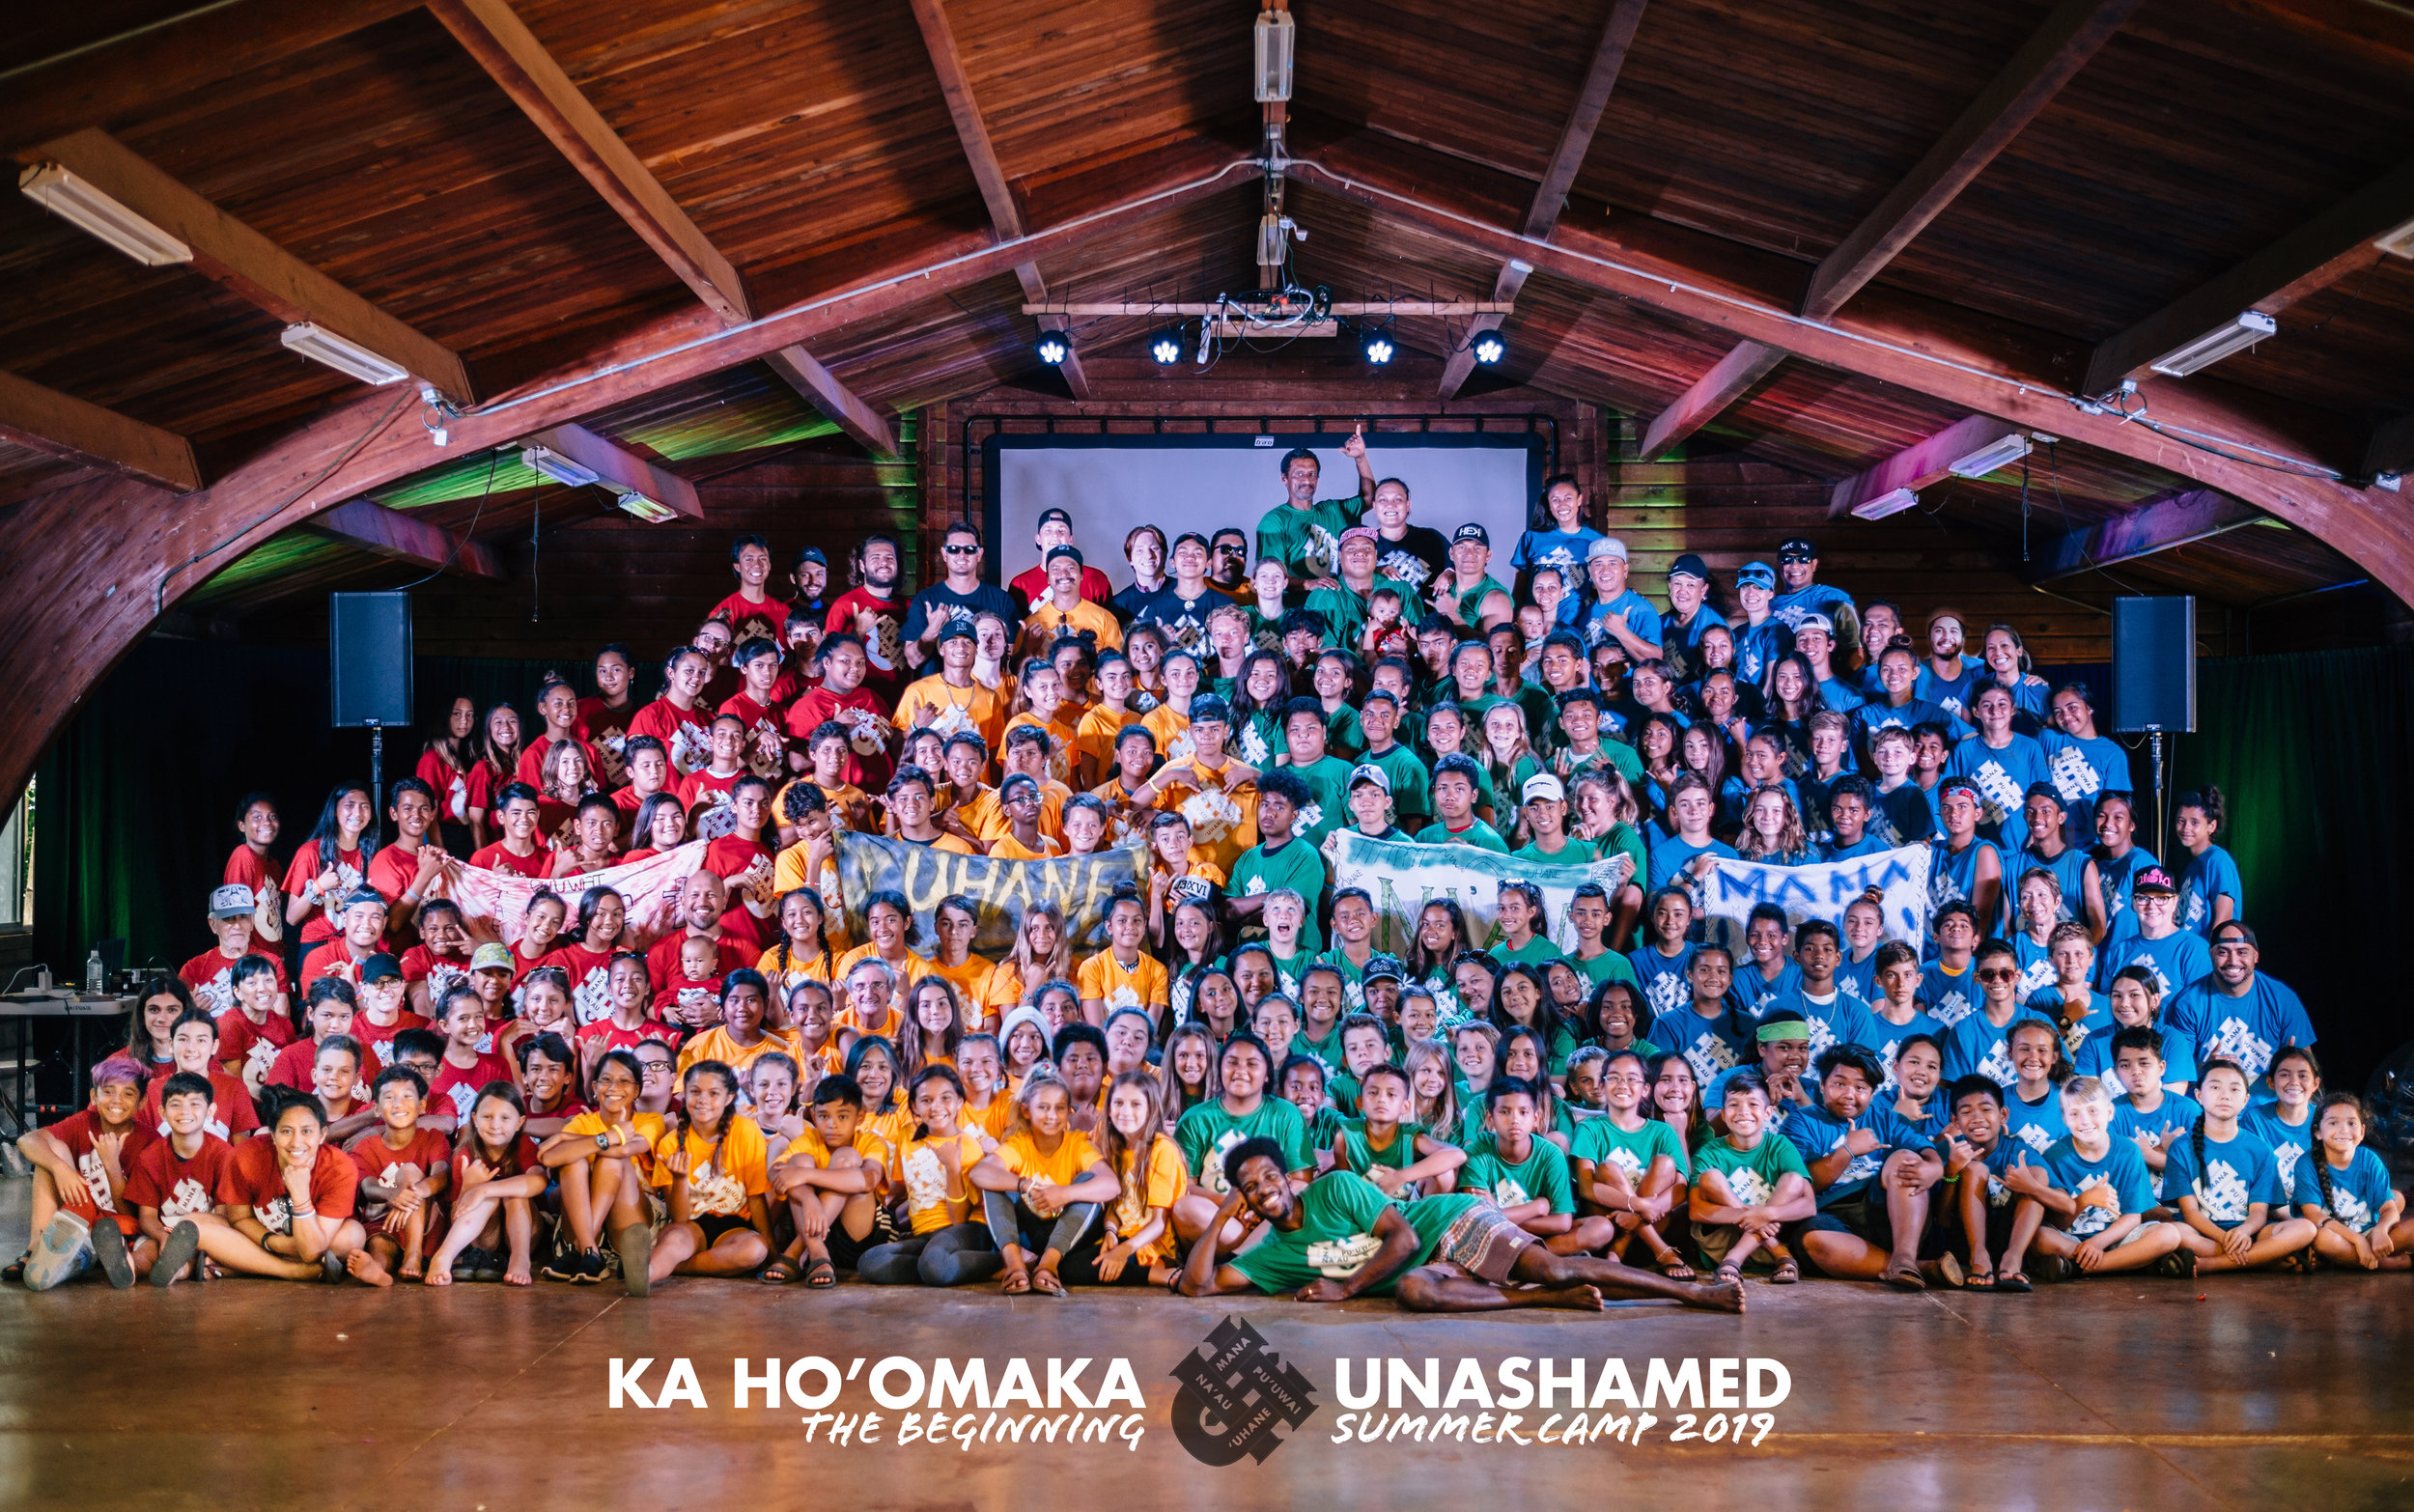 unashamed-hawaii-maui-oahu-summer-camp